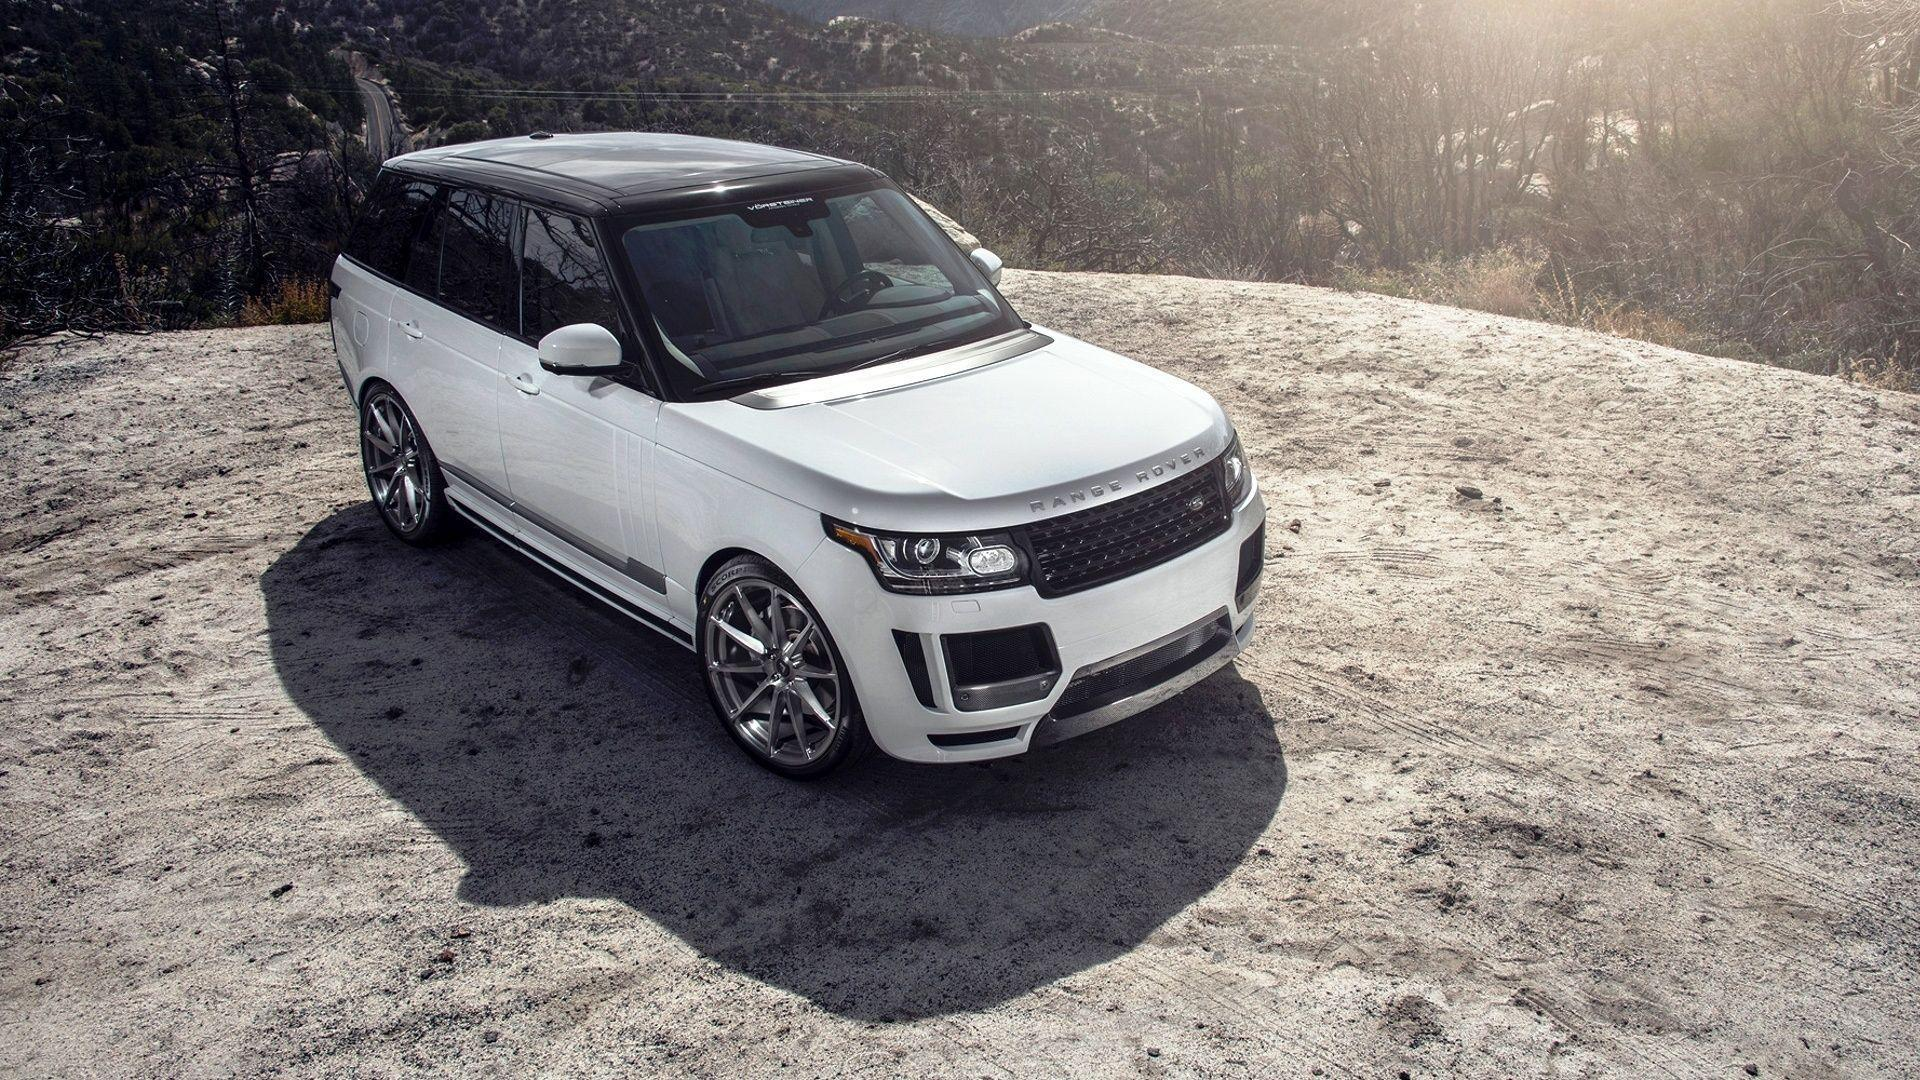 2015 Land Rover Range Rover Wallpaper | HD Car Wallpapers